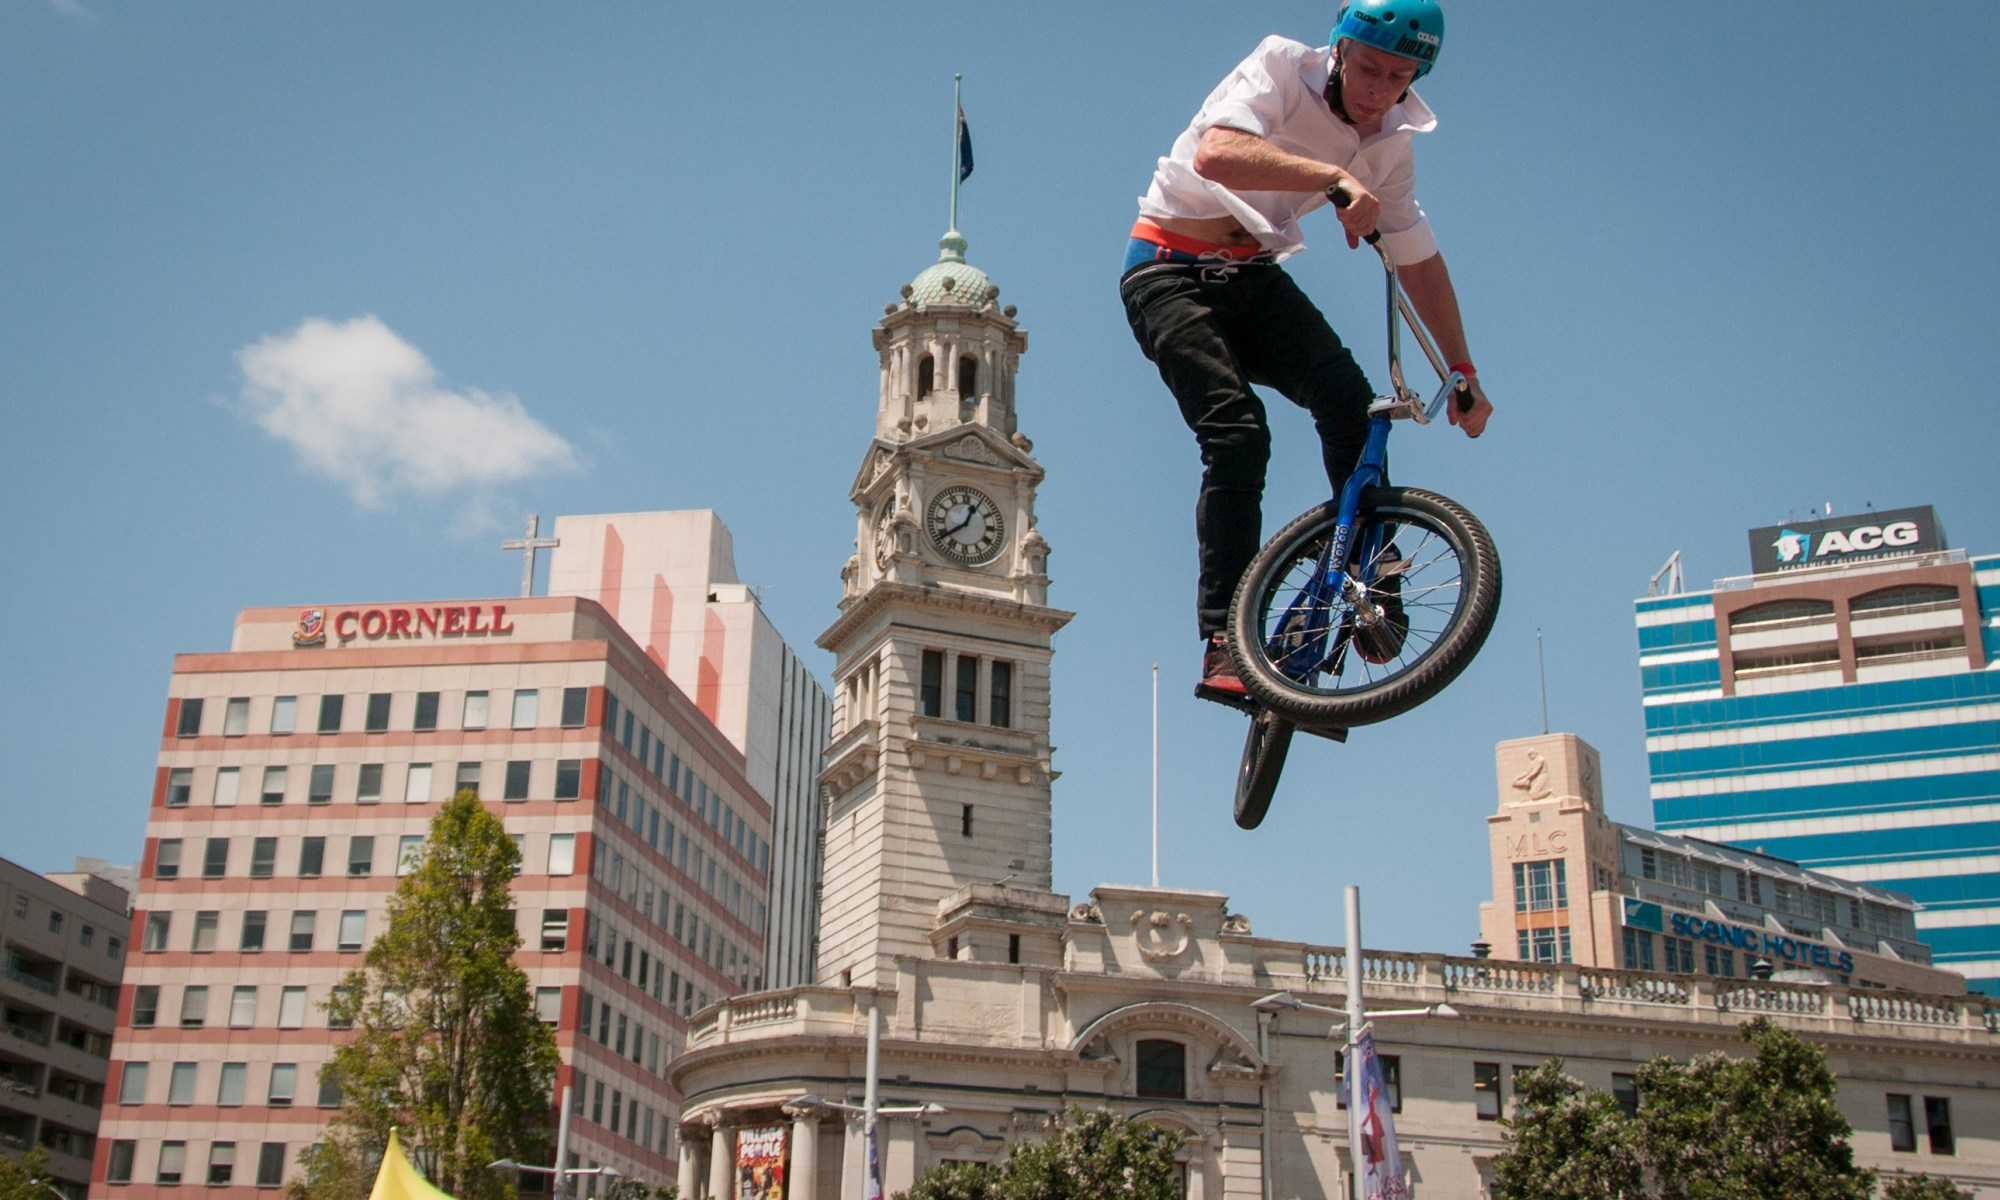 BMX Air at Aotea Square Auckland